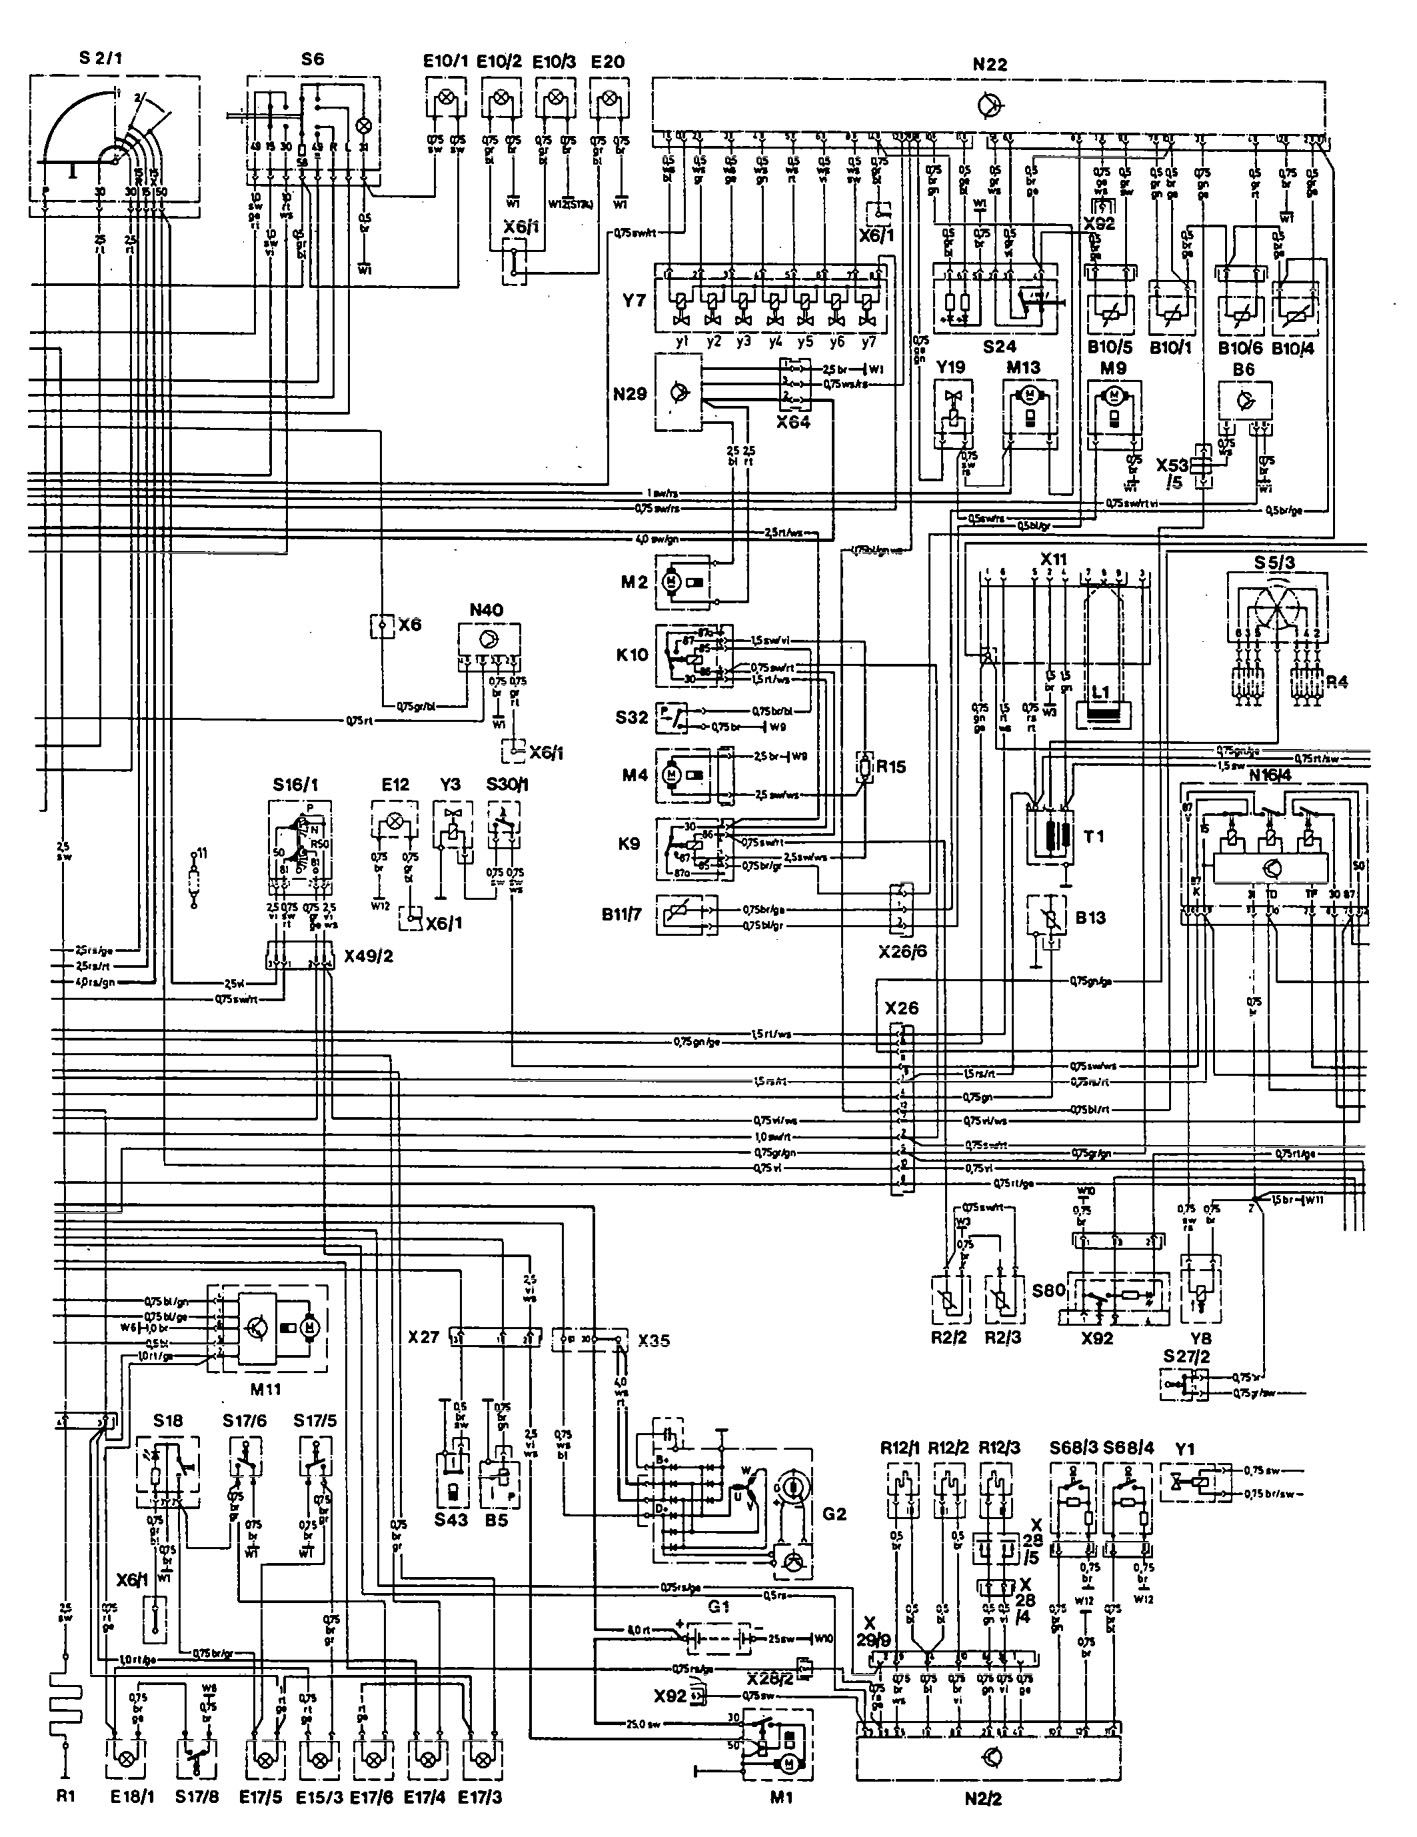 hight resolution of  mercedes benz 300e wiring diagram hvac controls part 2